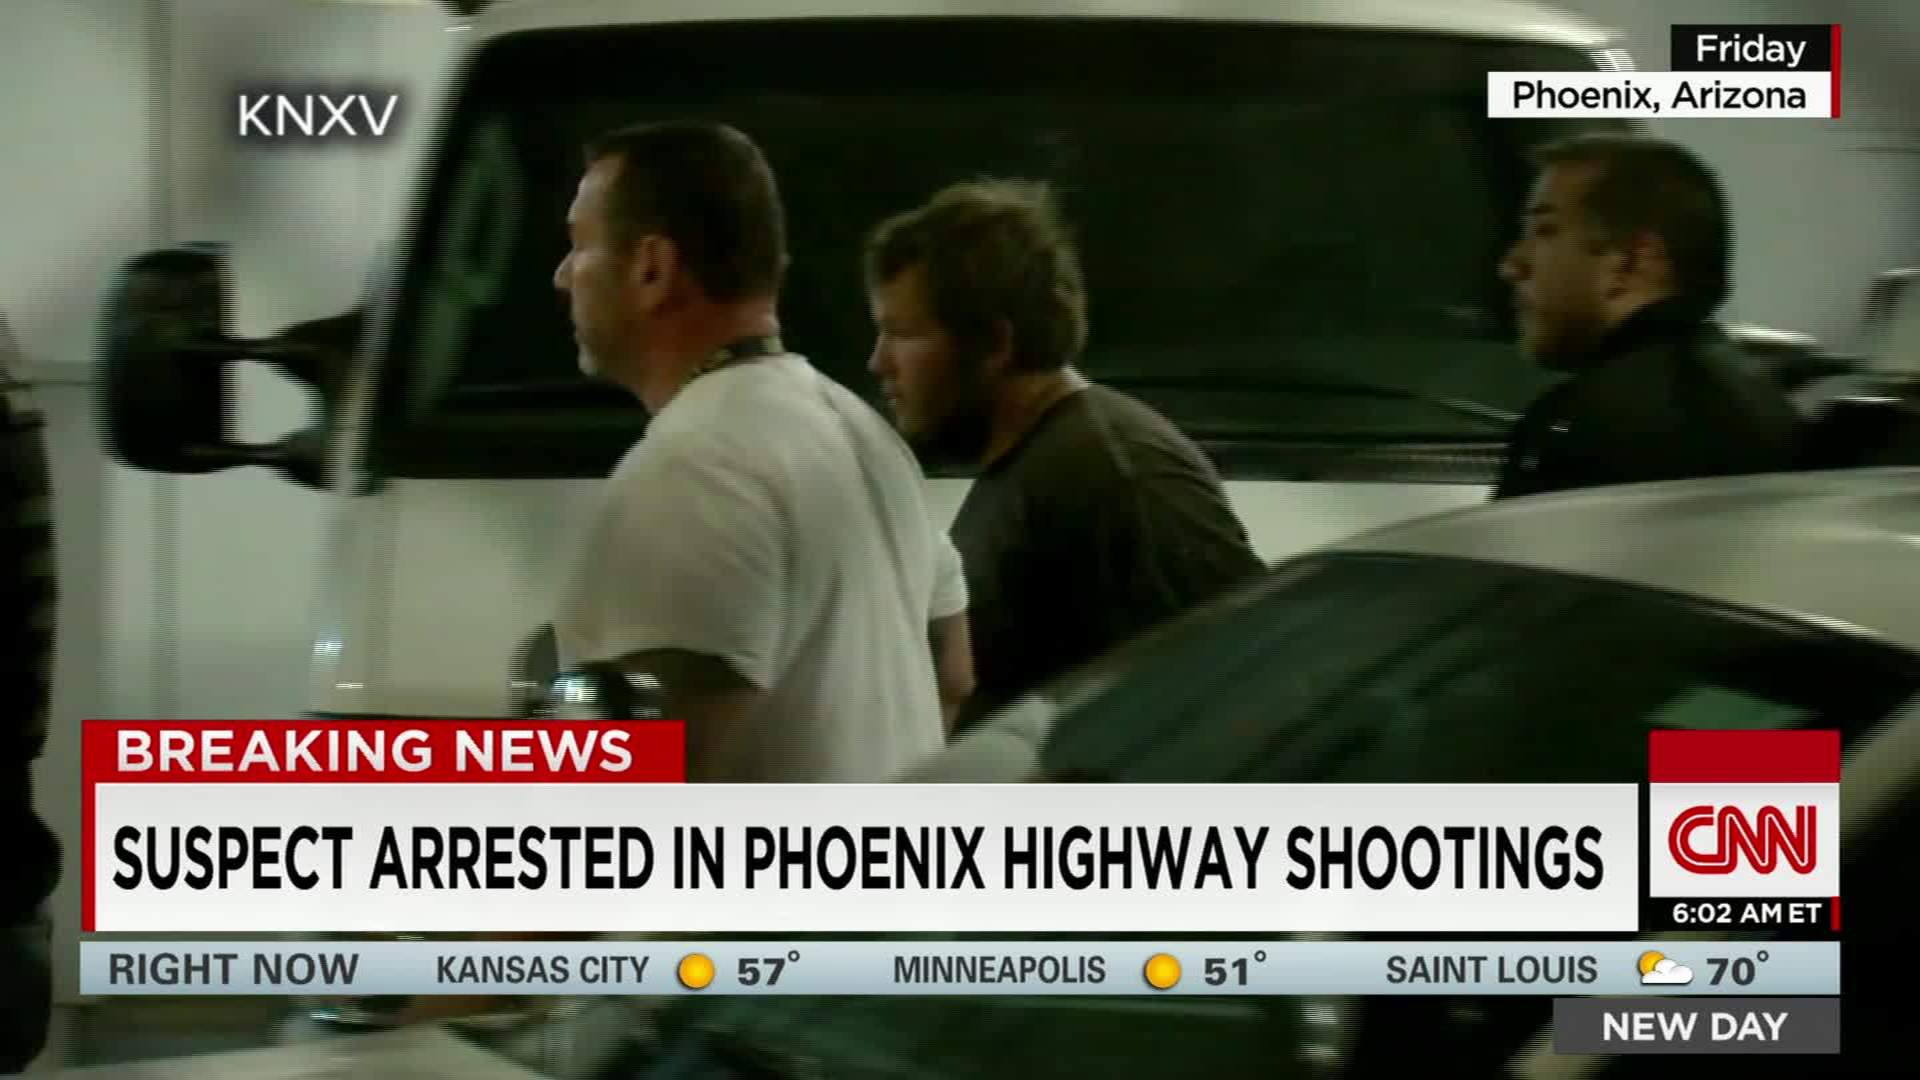 Police arrest suspect in Phoenix freeway shootings - CNN Video